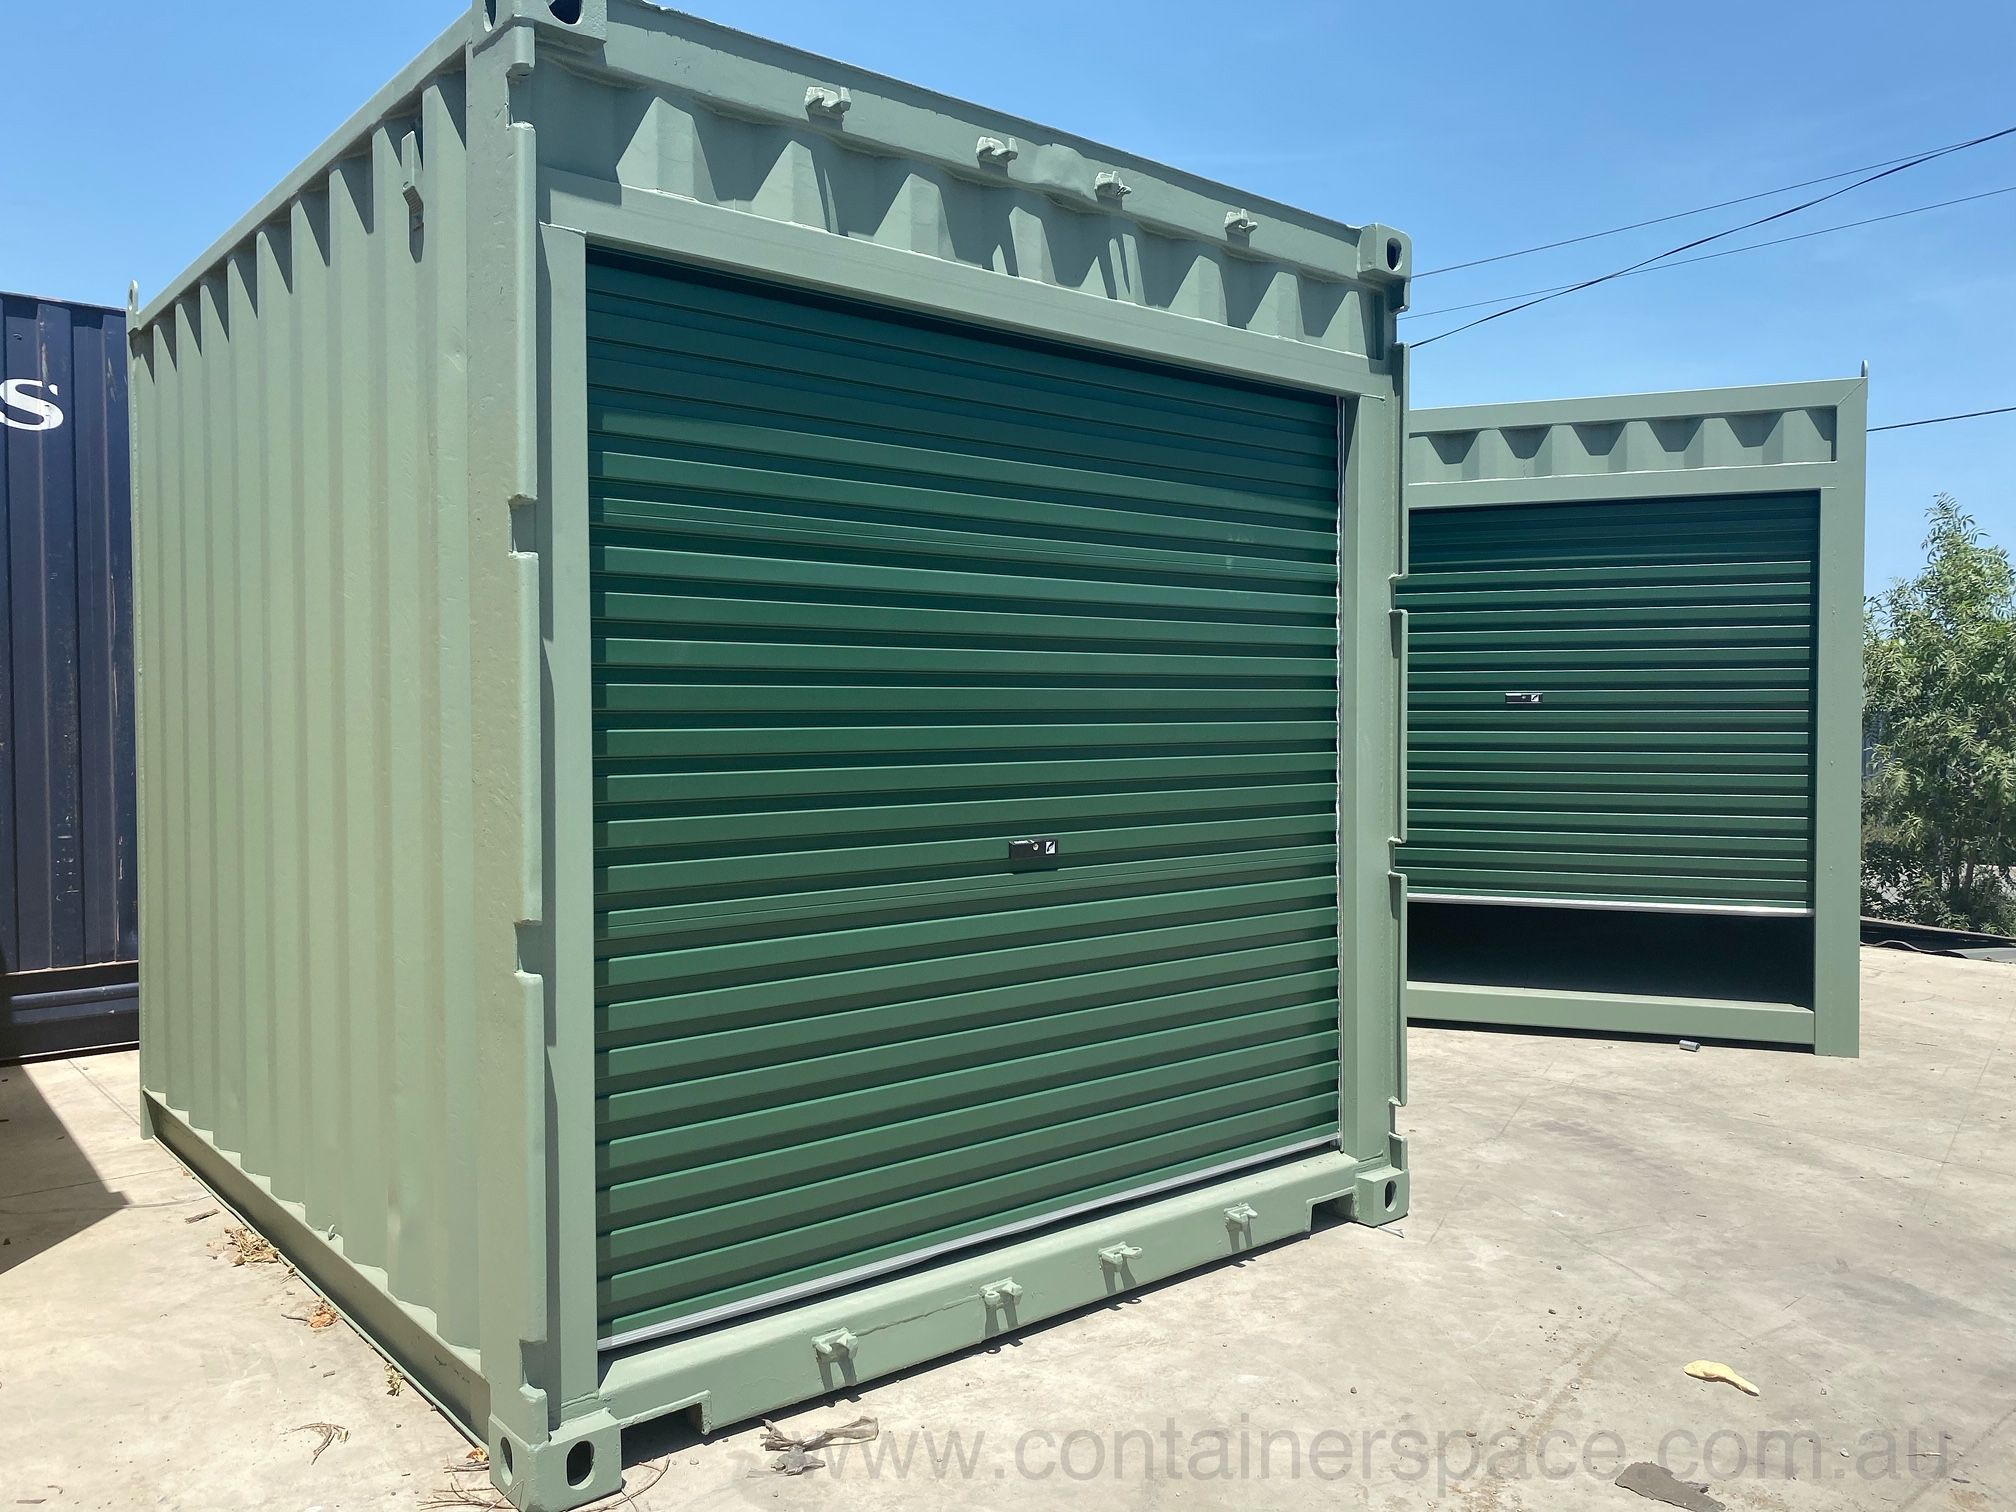 Shipping Containers For Sale In Melbourne Shipping Container Containers For Sale Container Shop